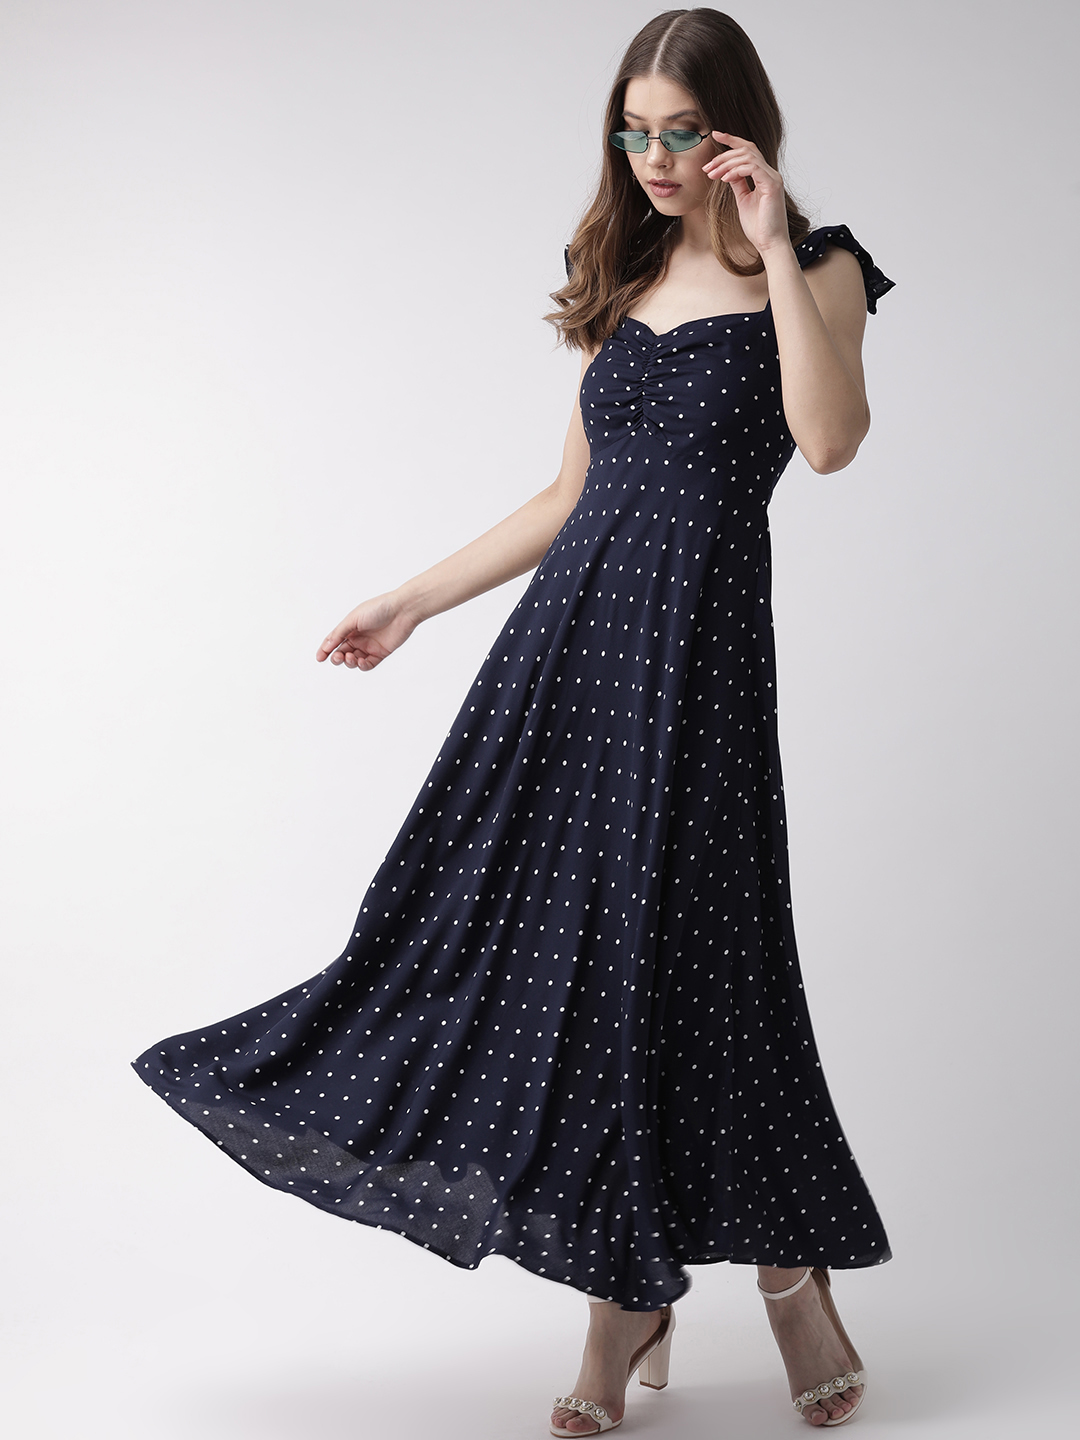 Dresses-The Polka Playful Midi Dress4